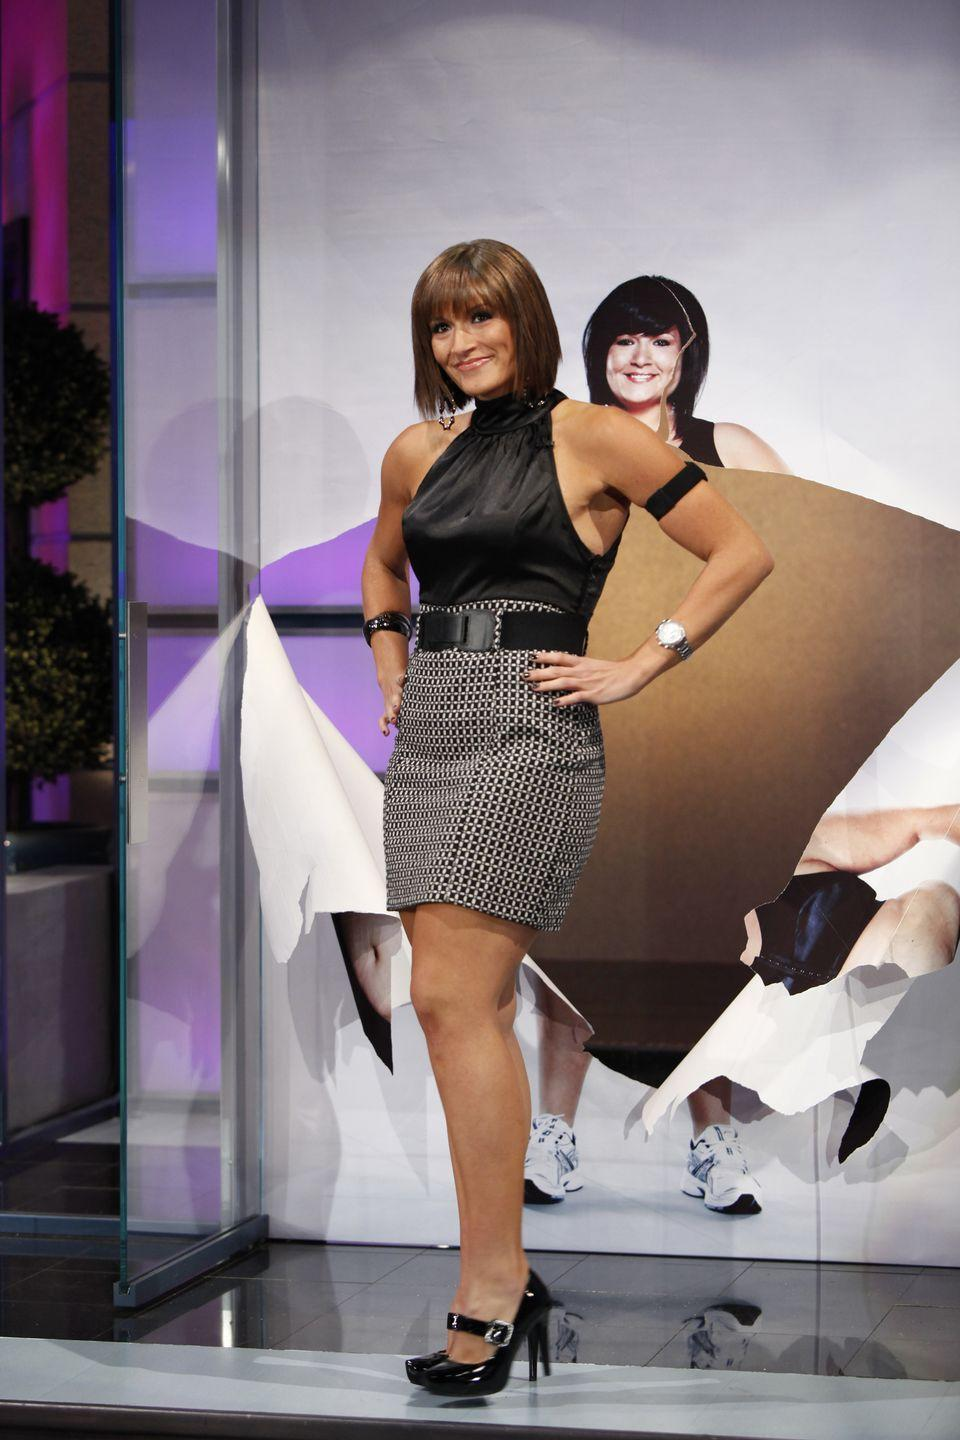 <p>By the end, Rebecca lost 139 pounds and nearly 50 percent of her starting body weight, which earned her the $100,000 prize for most weight lost by an eliminated player.</p>